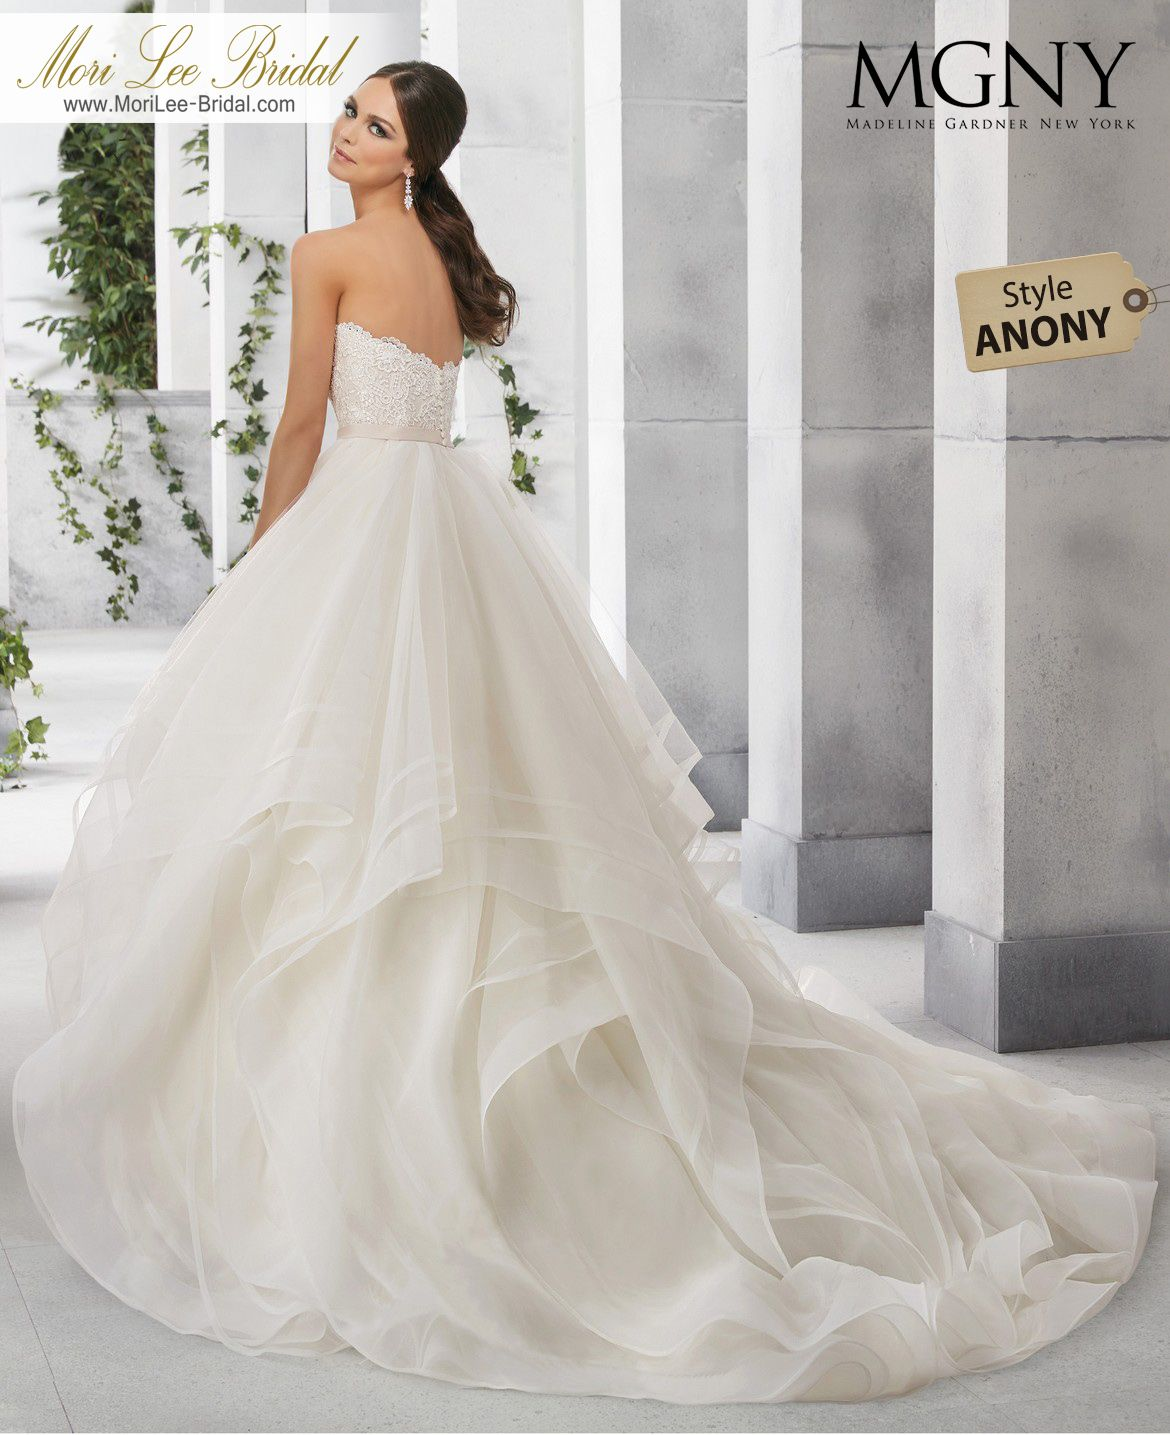 Dress style anony francoisea classic strapless vintage lace bodice